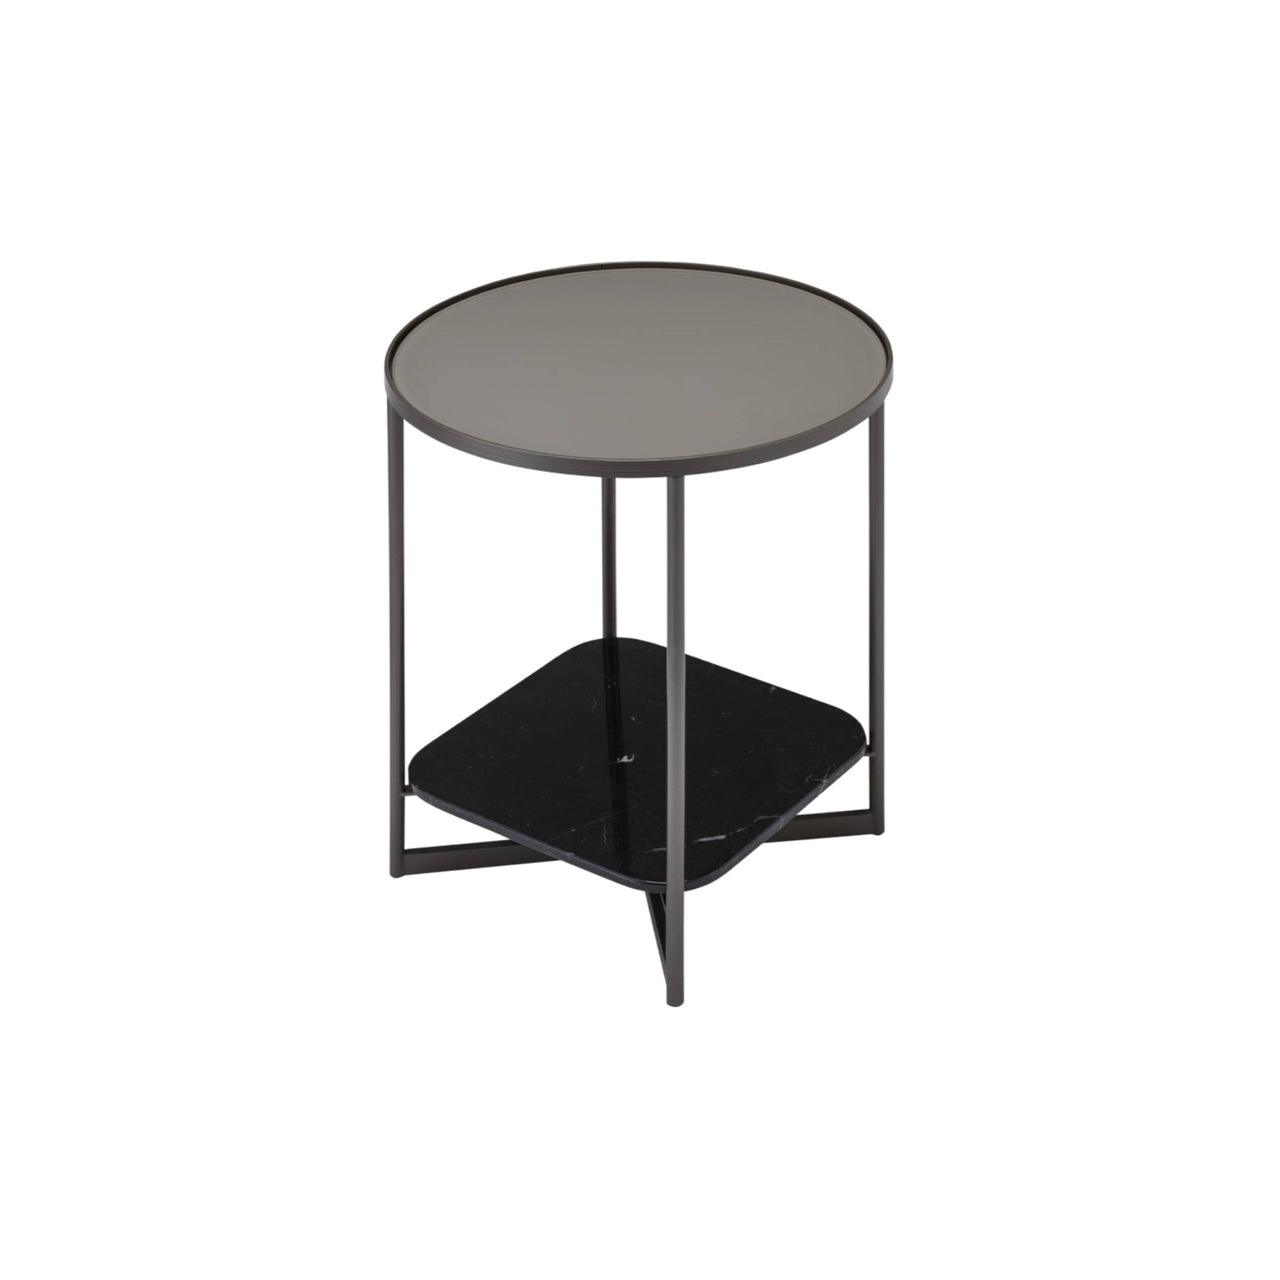 Mohana Side Table Small: Pewter + Etched Grey Glass + Black Marble